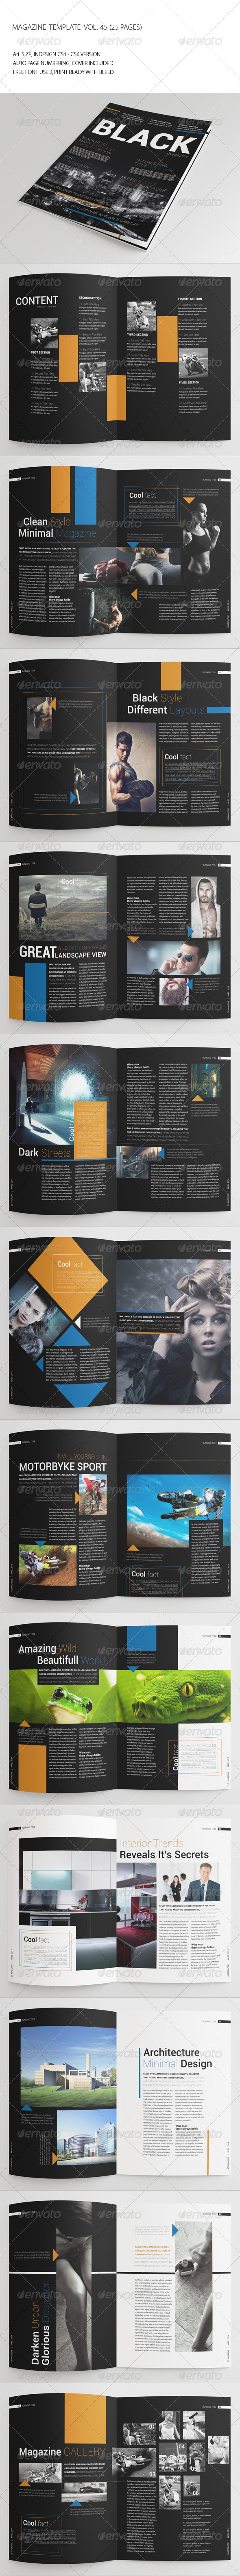 GraphicRiver 25 Pages Black Magazine Vol45 7497706